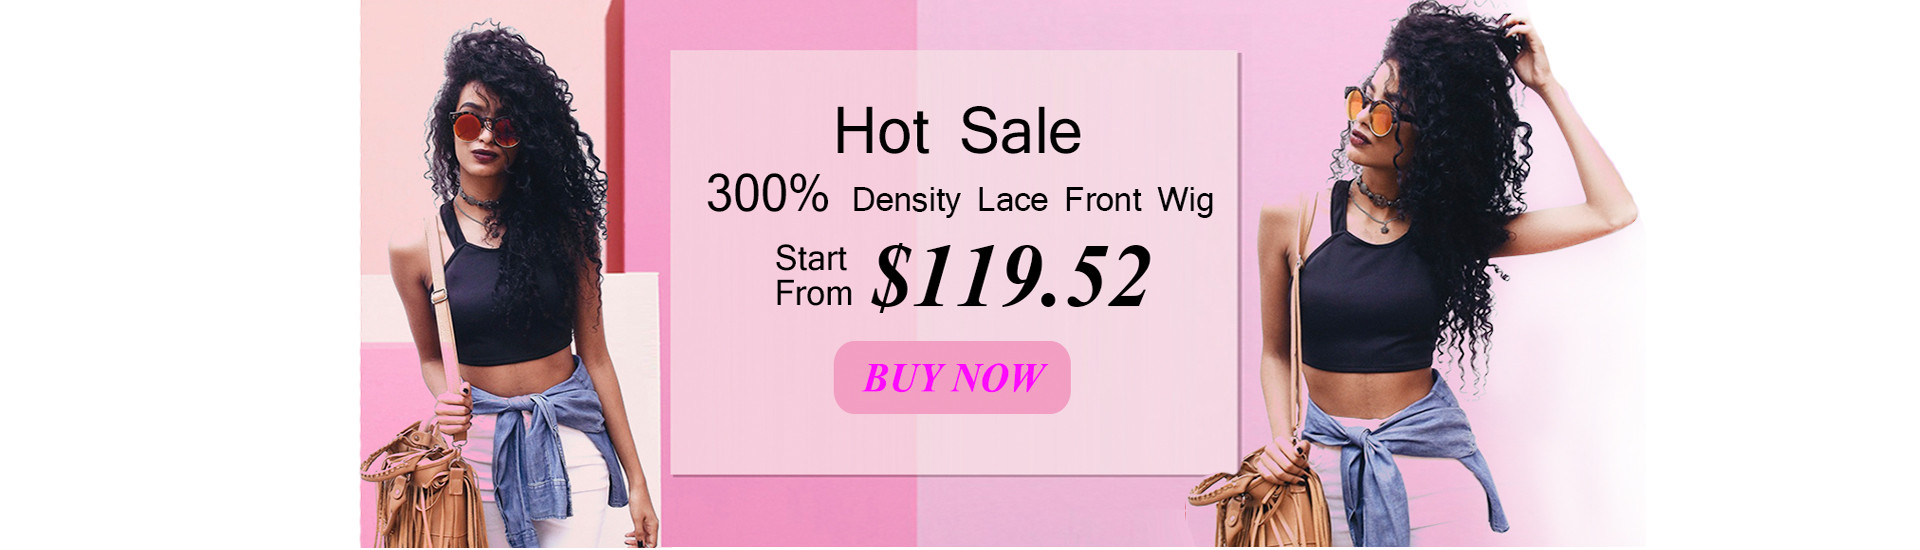 MerryHair Hot Sale 300% Lace Front Wig Only $119.52